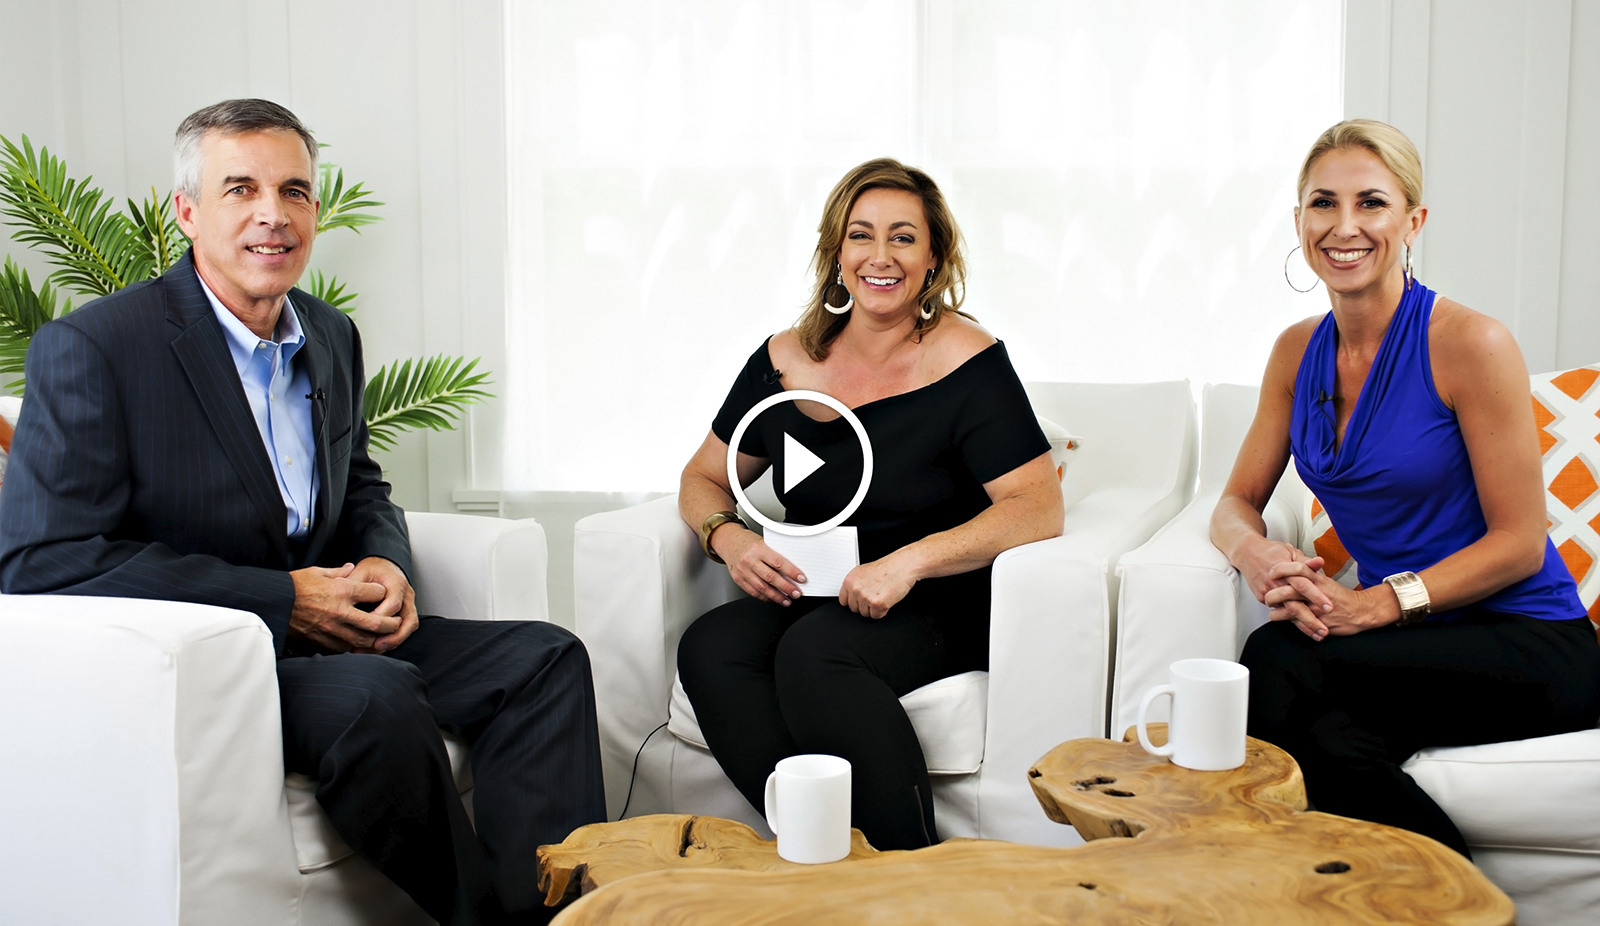 Terry Hastings discusses how your credit score can be impacted during divorce the divorce process.